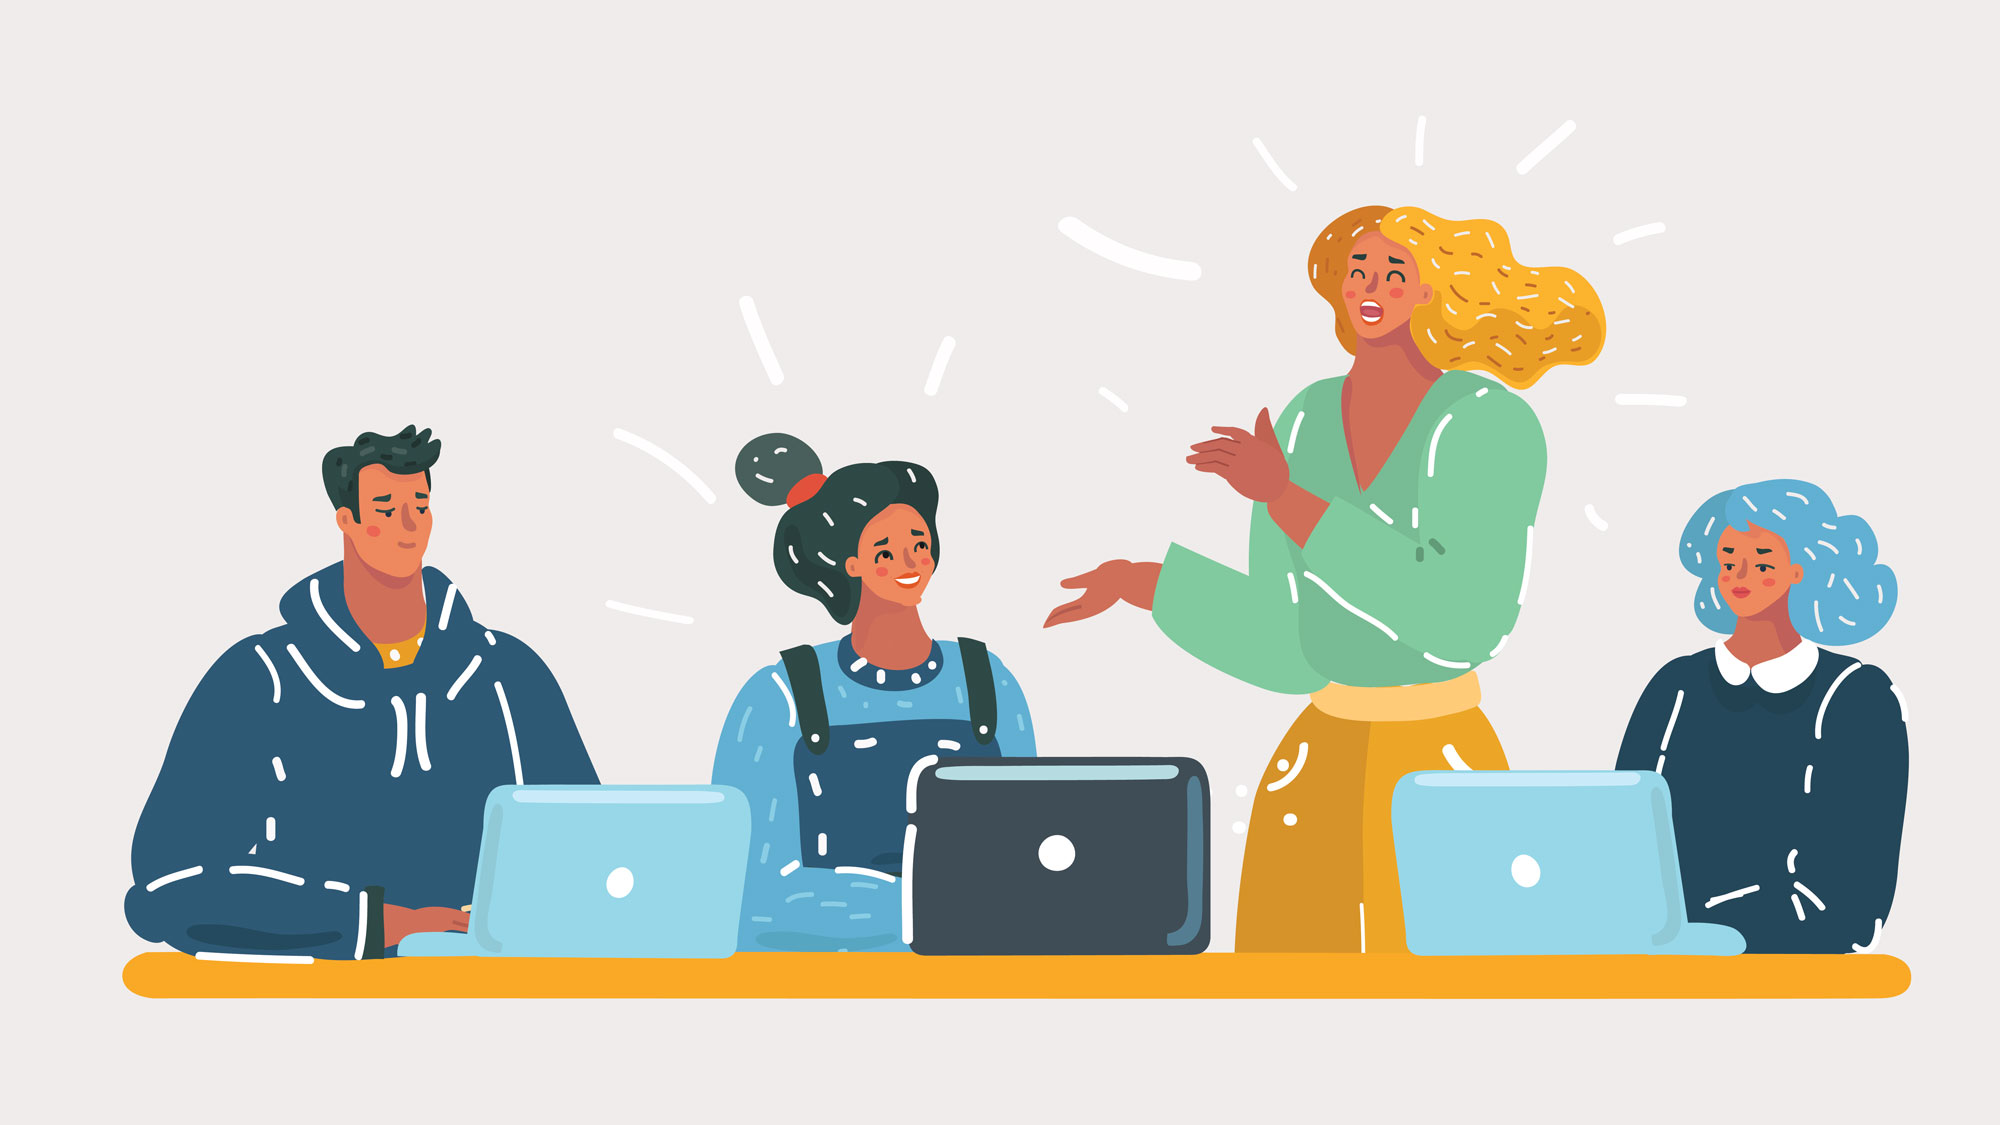 Illustration of people in meeting